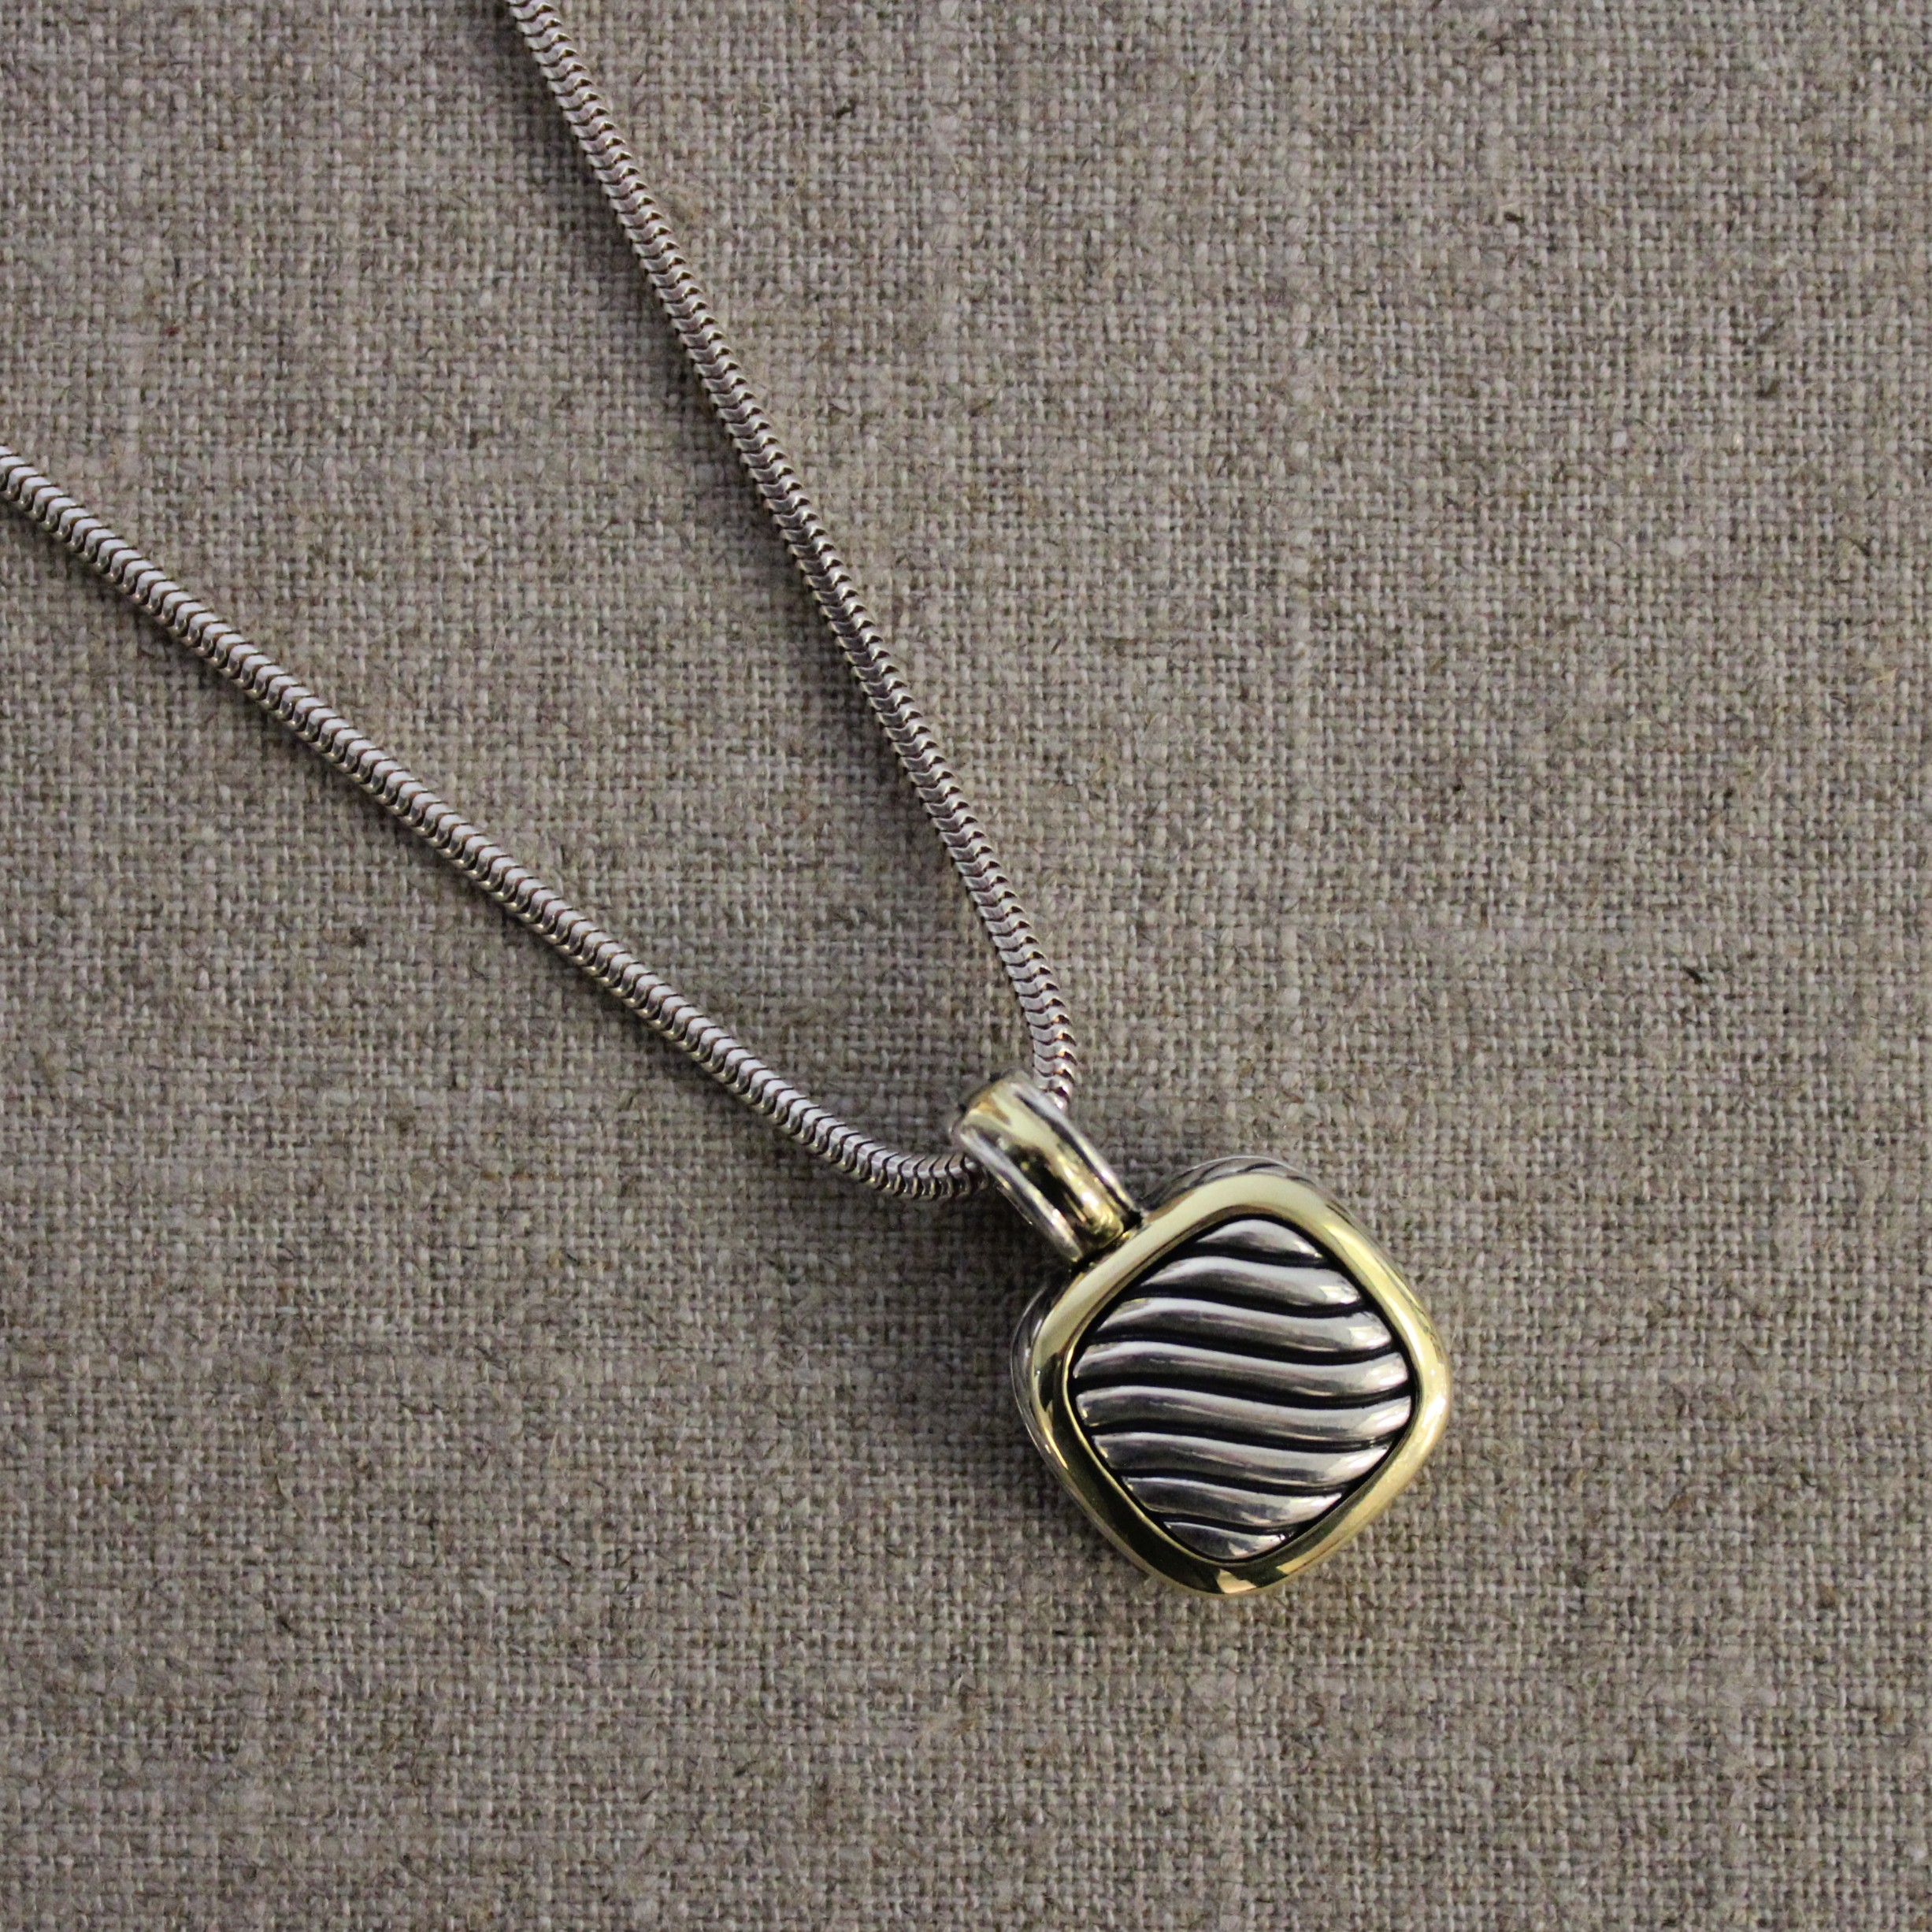 Vintage 18k Yellow Gold And Sterling Silver David Yurman Pendant